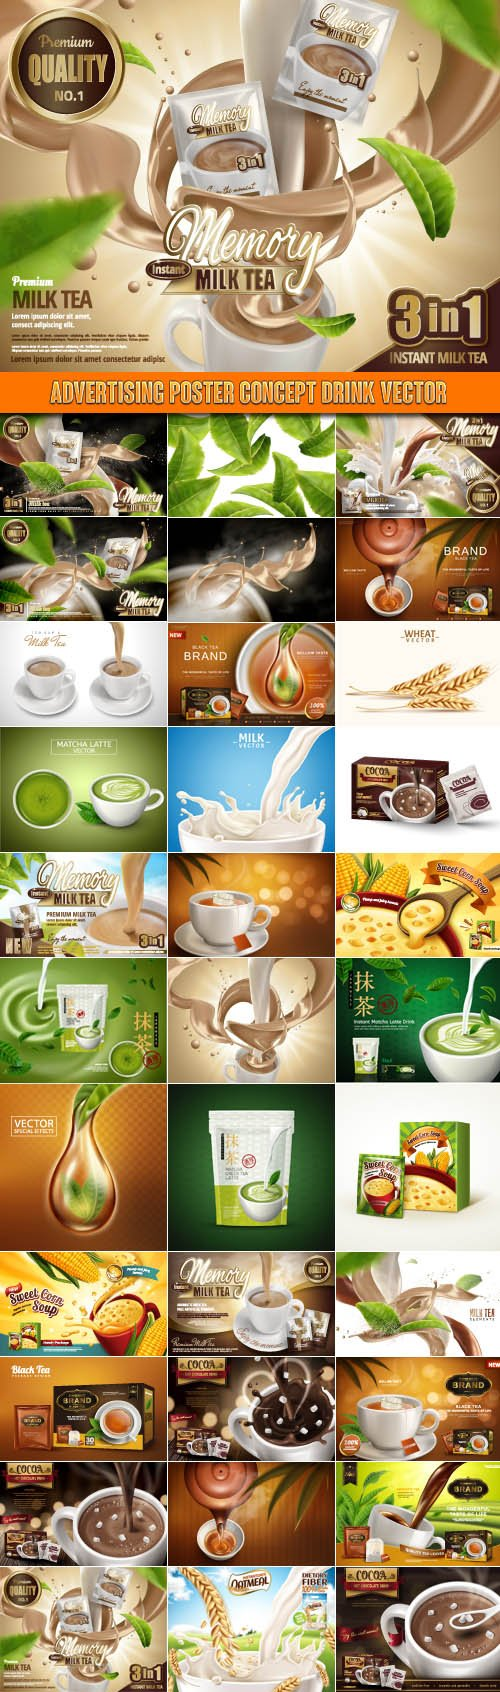 Advertising Poster Concept Drink vector